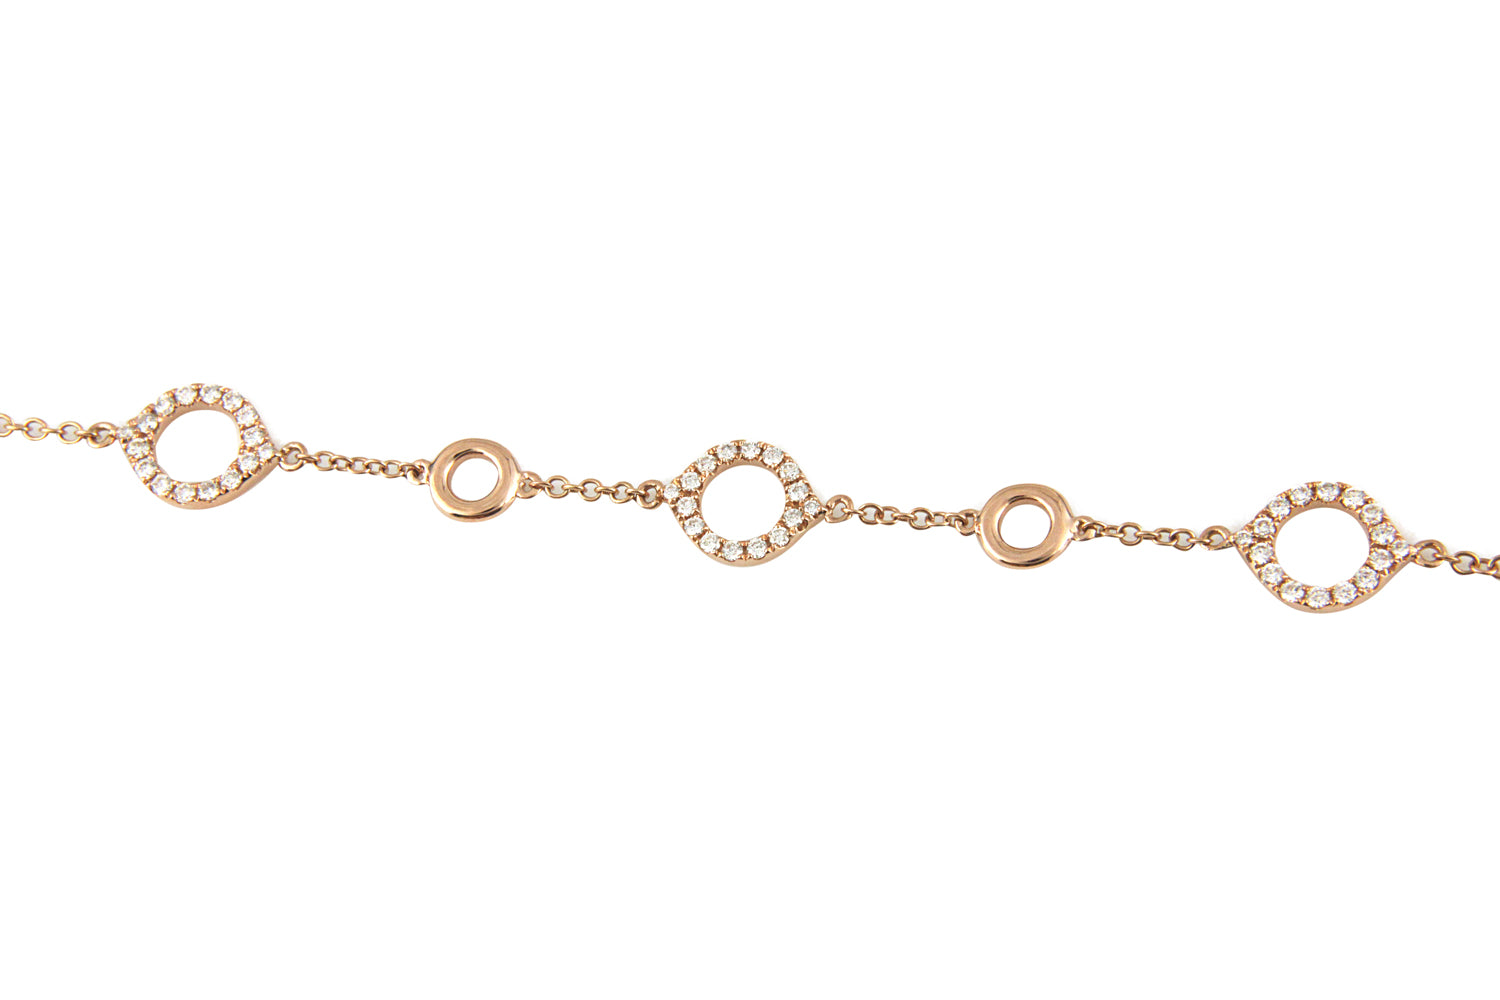 Ladies Diamond Tennis Bracelet with Circle Design